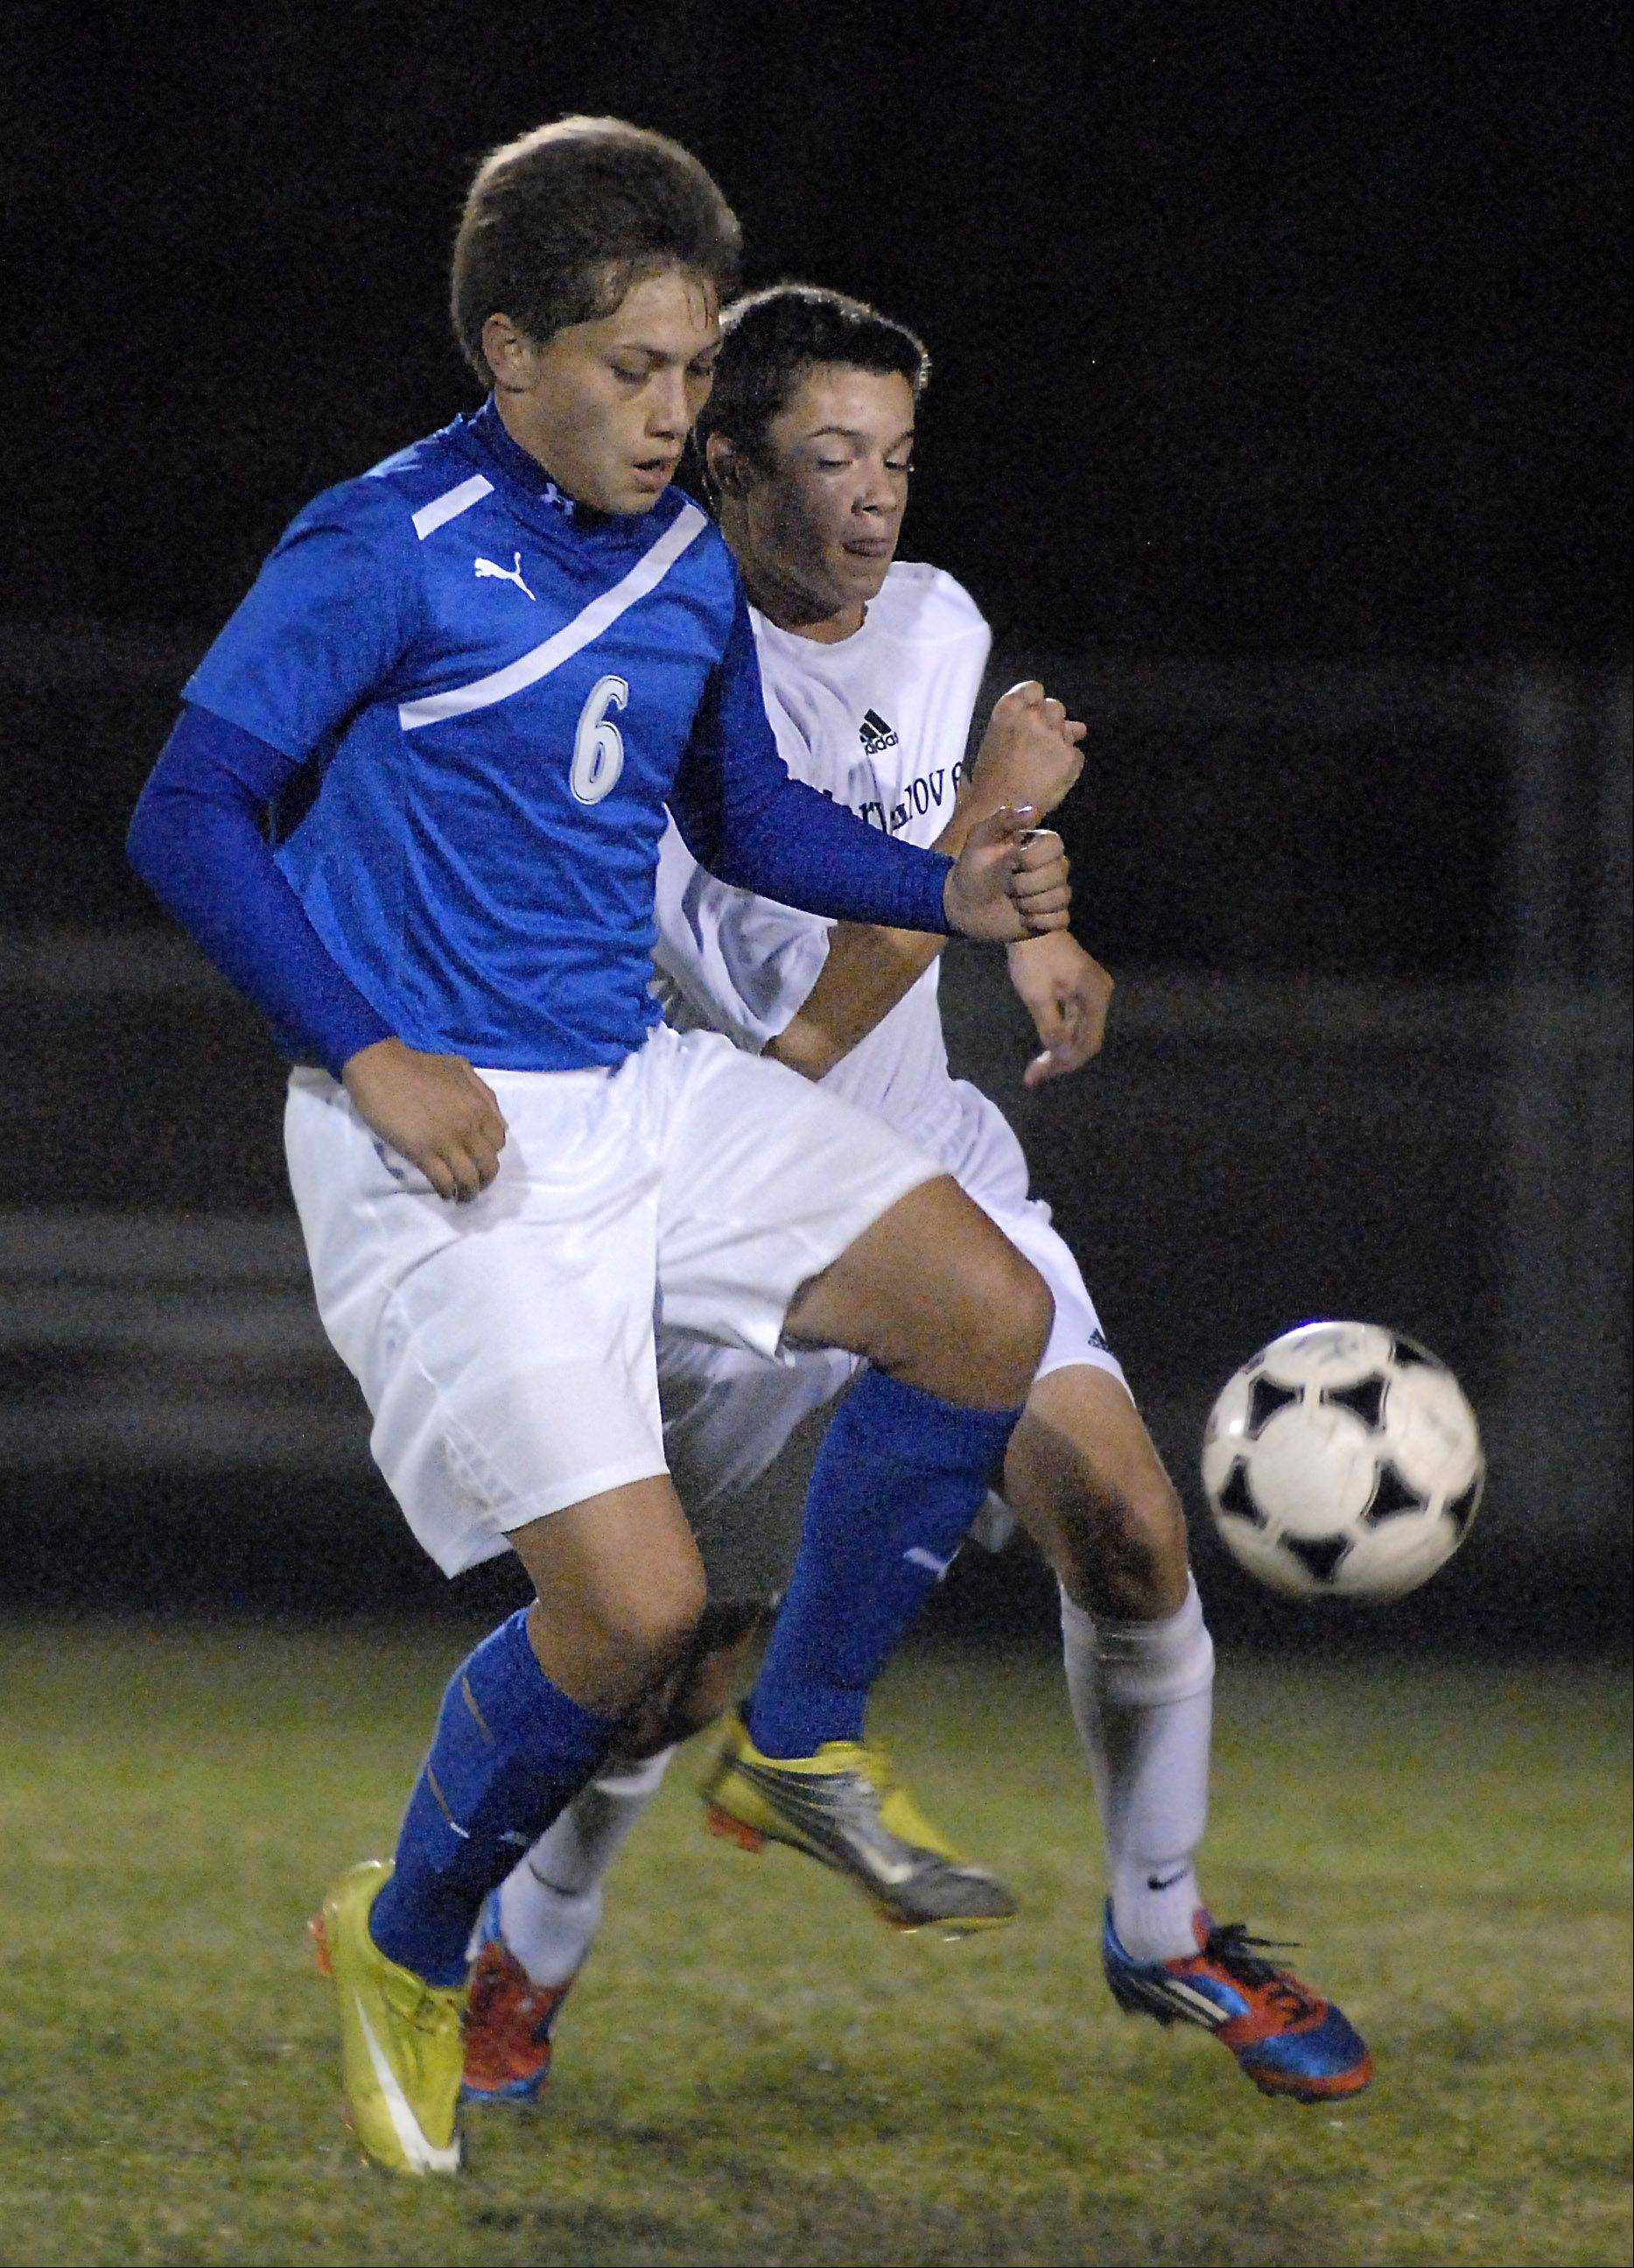 Cary-Grove's Dale Opasser rivals Dundee-Crown's Alex Ramirez for the ball in the first half on Tuesday, October 2.